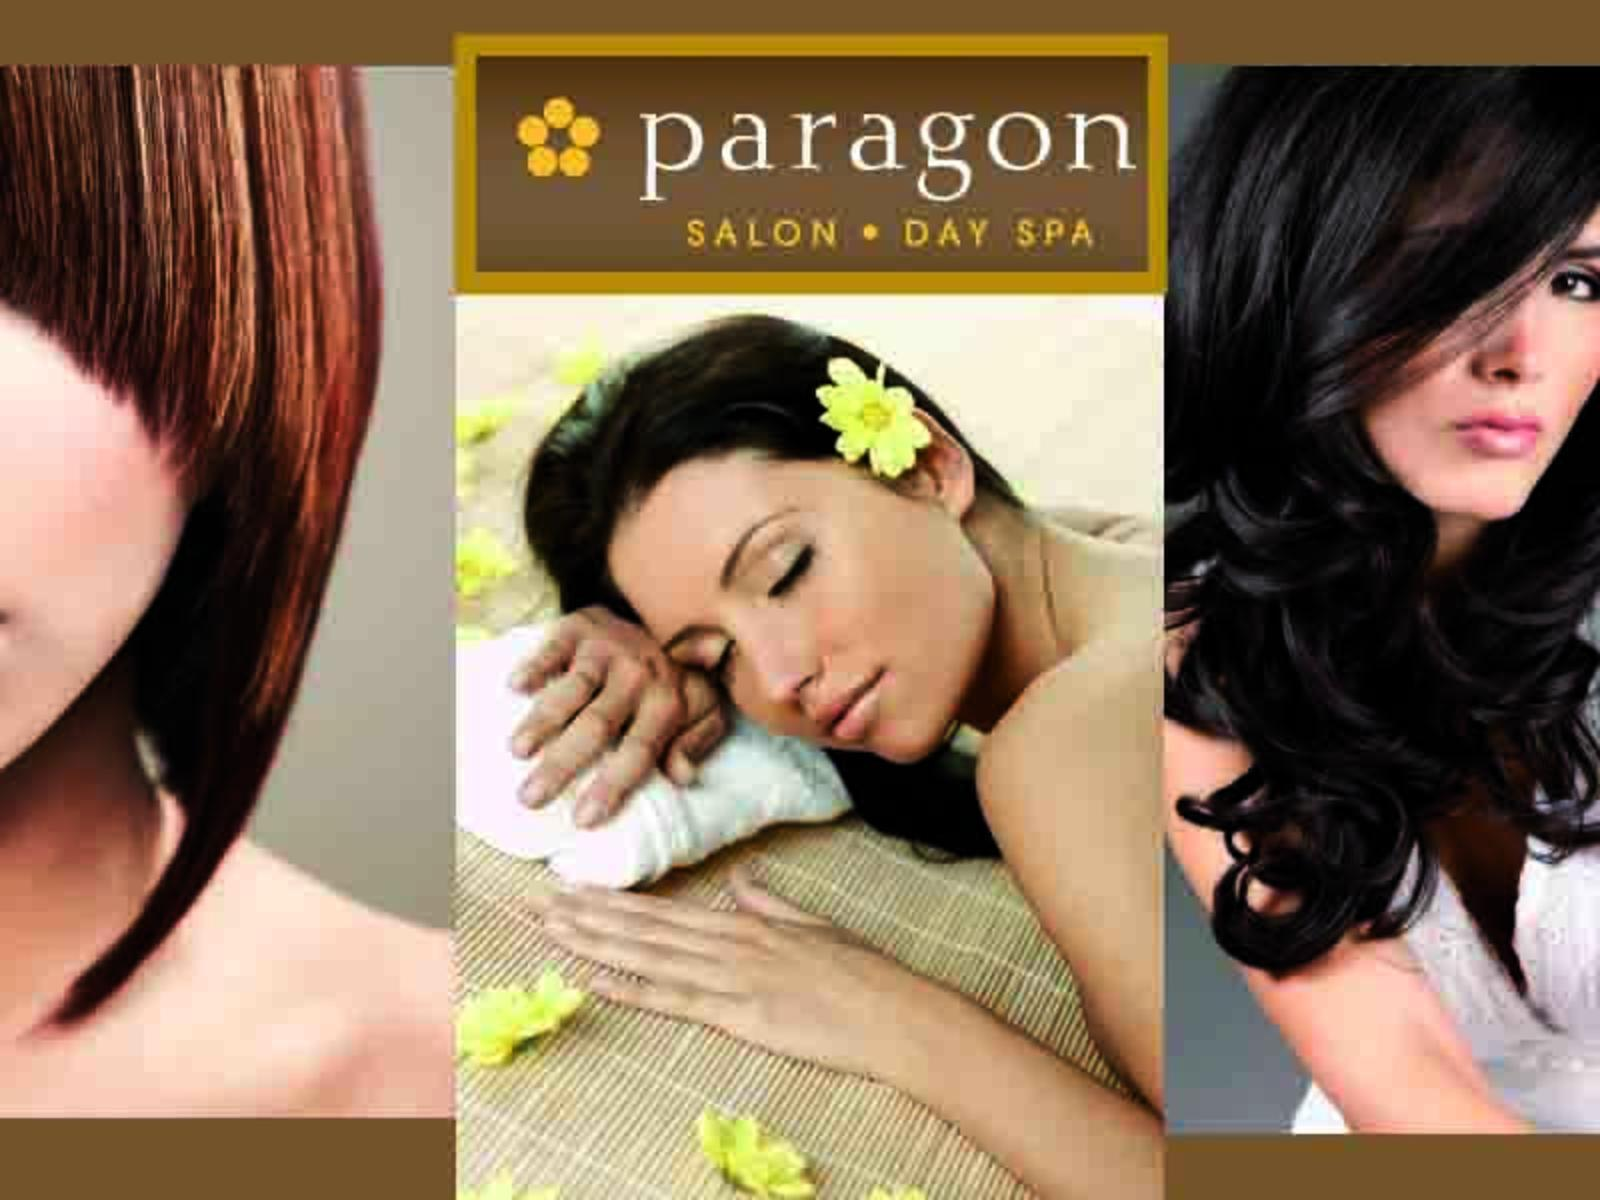 Paragon Salon & Day Spa